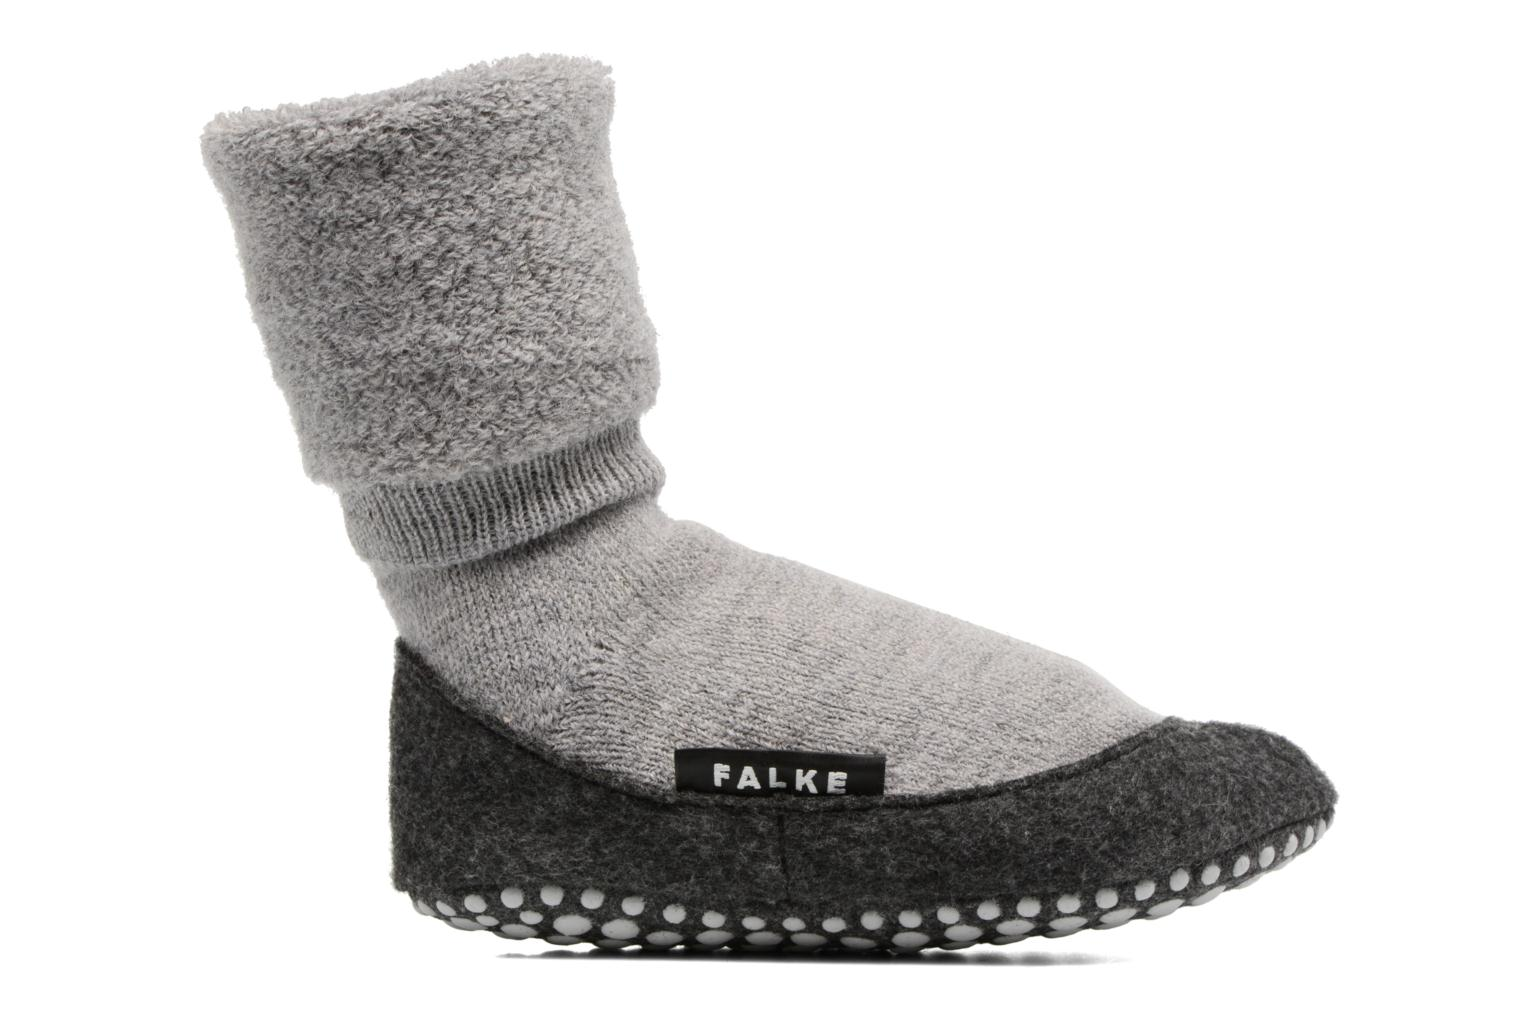 Chaussons-chaussettes Cosyshoes 3400 Light grey